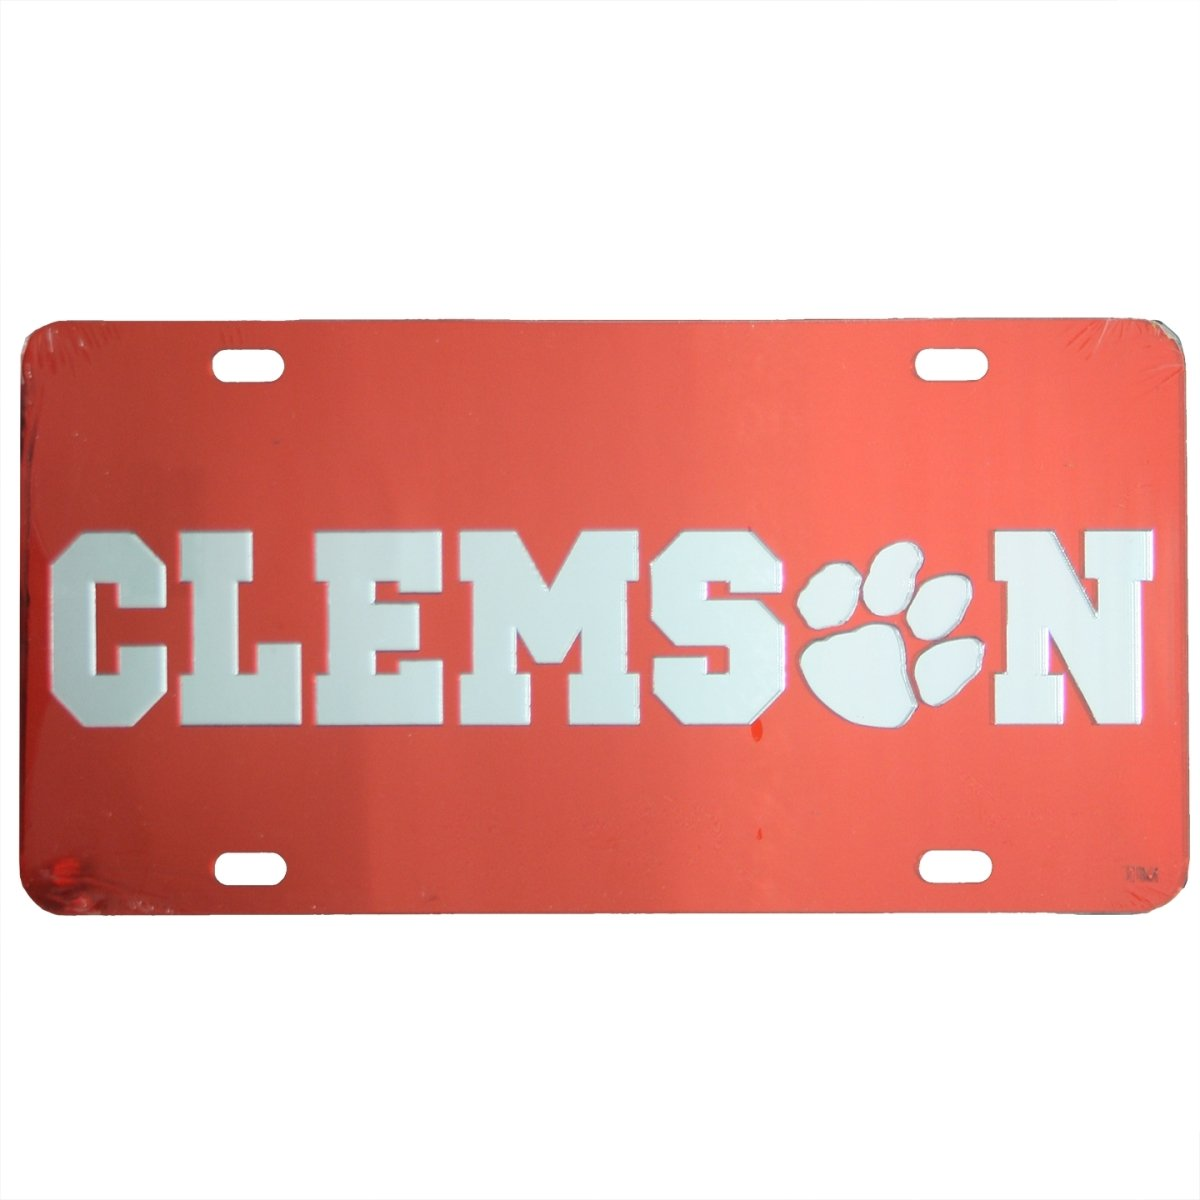 Laser Cut Mirrored Clems(paw)n Car Tag Orange With Silver Logo - Mr. Knickerbocker